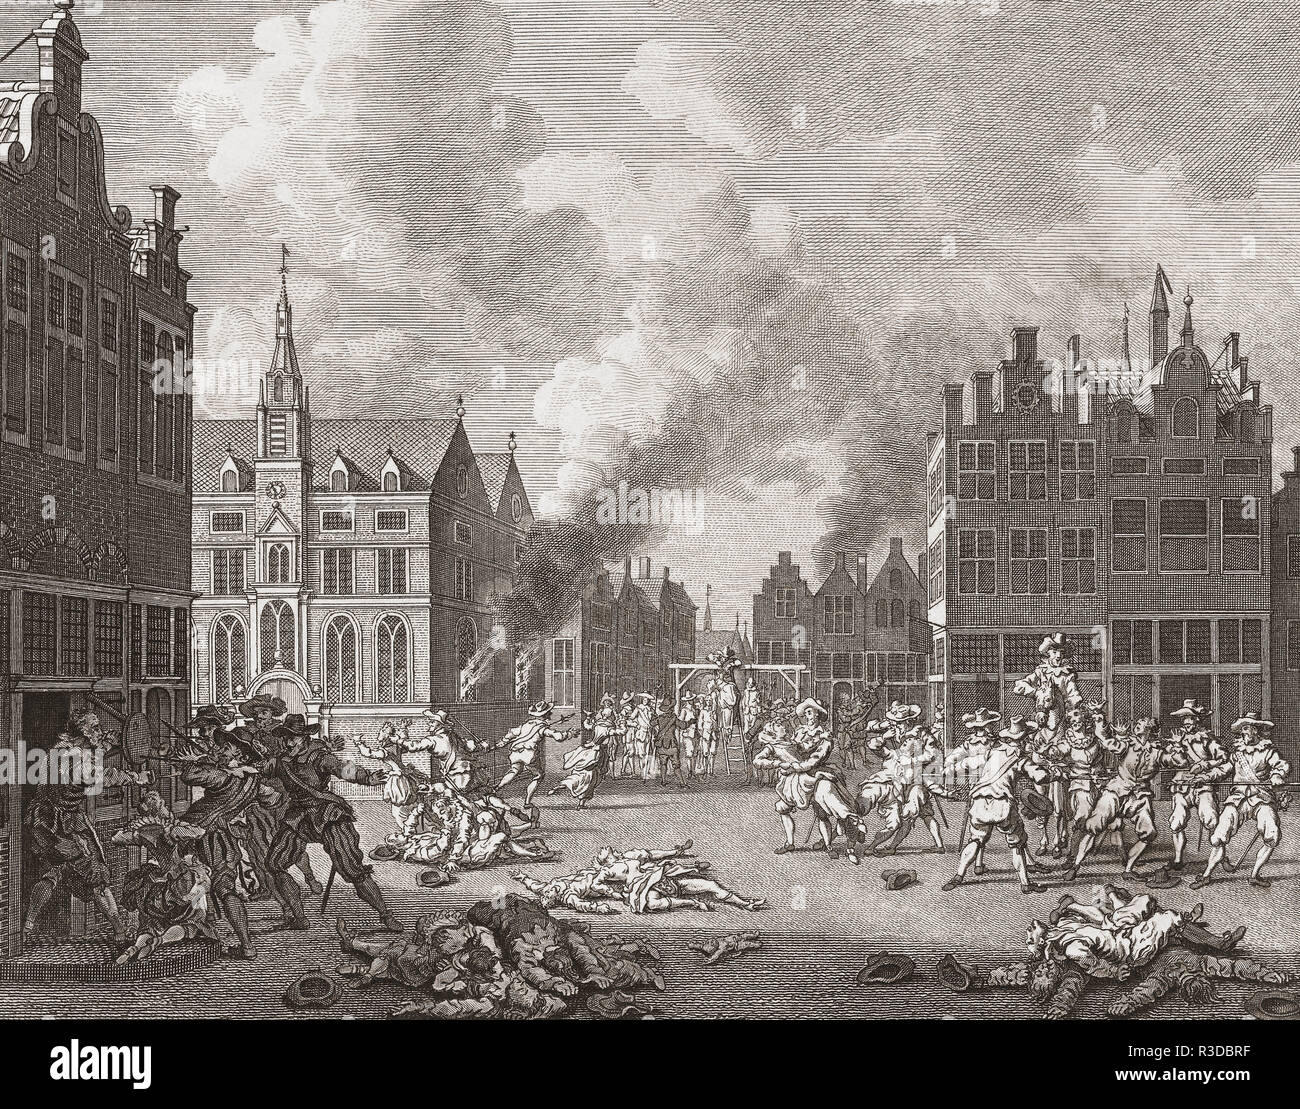 The Bloodbath in Naarden, 1572.  After a 18th century engraving by Noach van der Meer.  The picture represents the Massacre of Naarden, when Spanish soldiers sacked the Dutch town during the Eighty Years War. - Stock Image